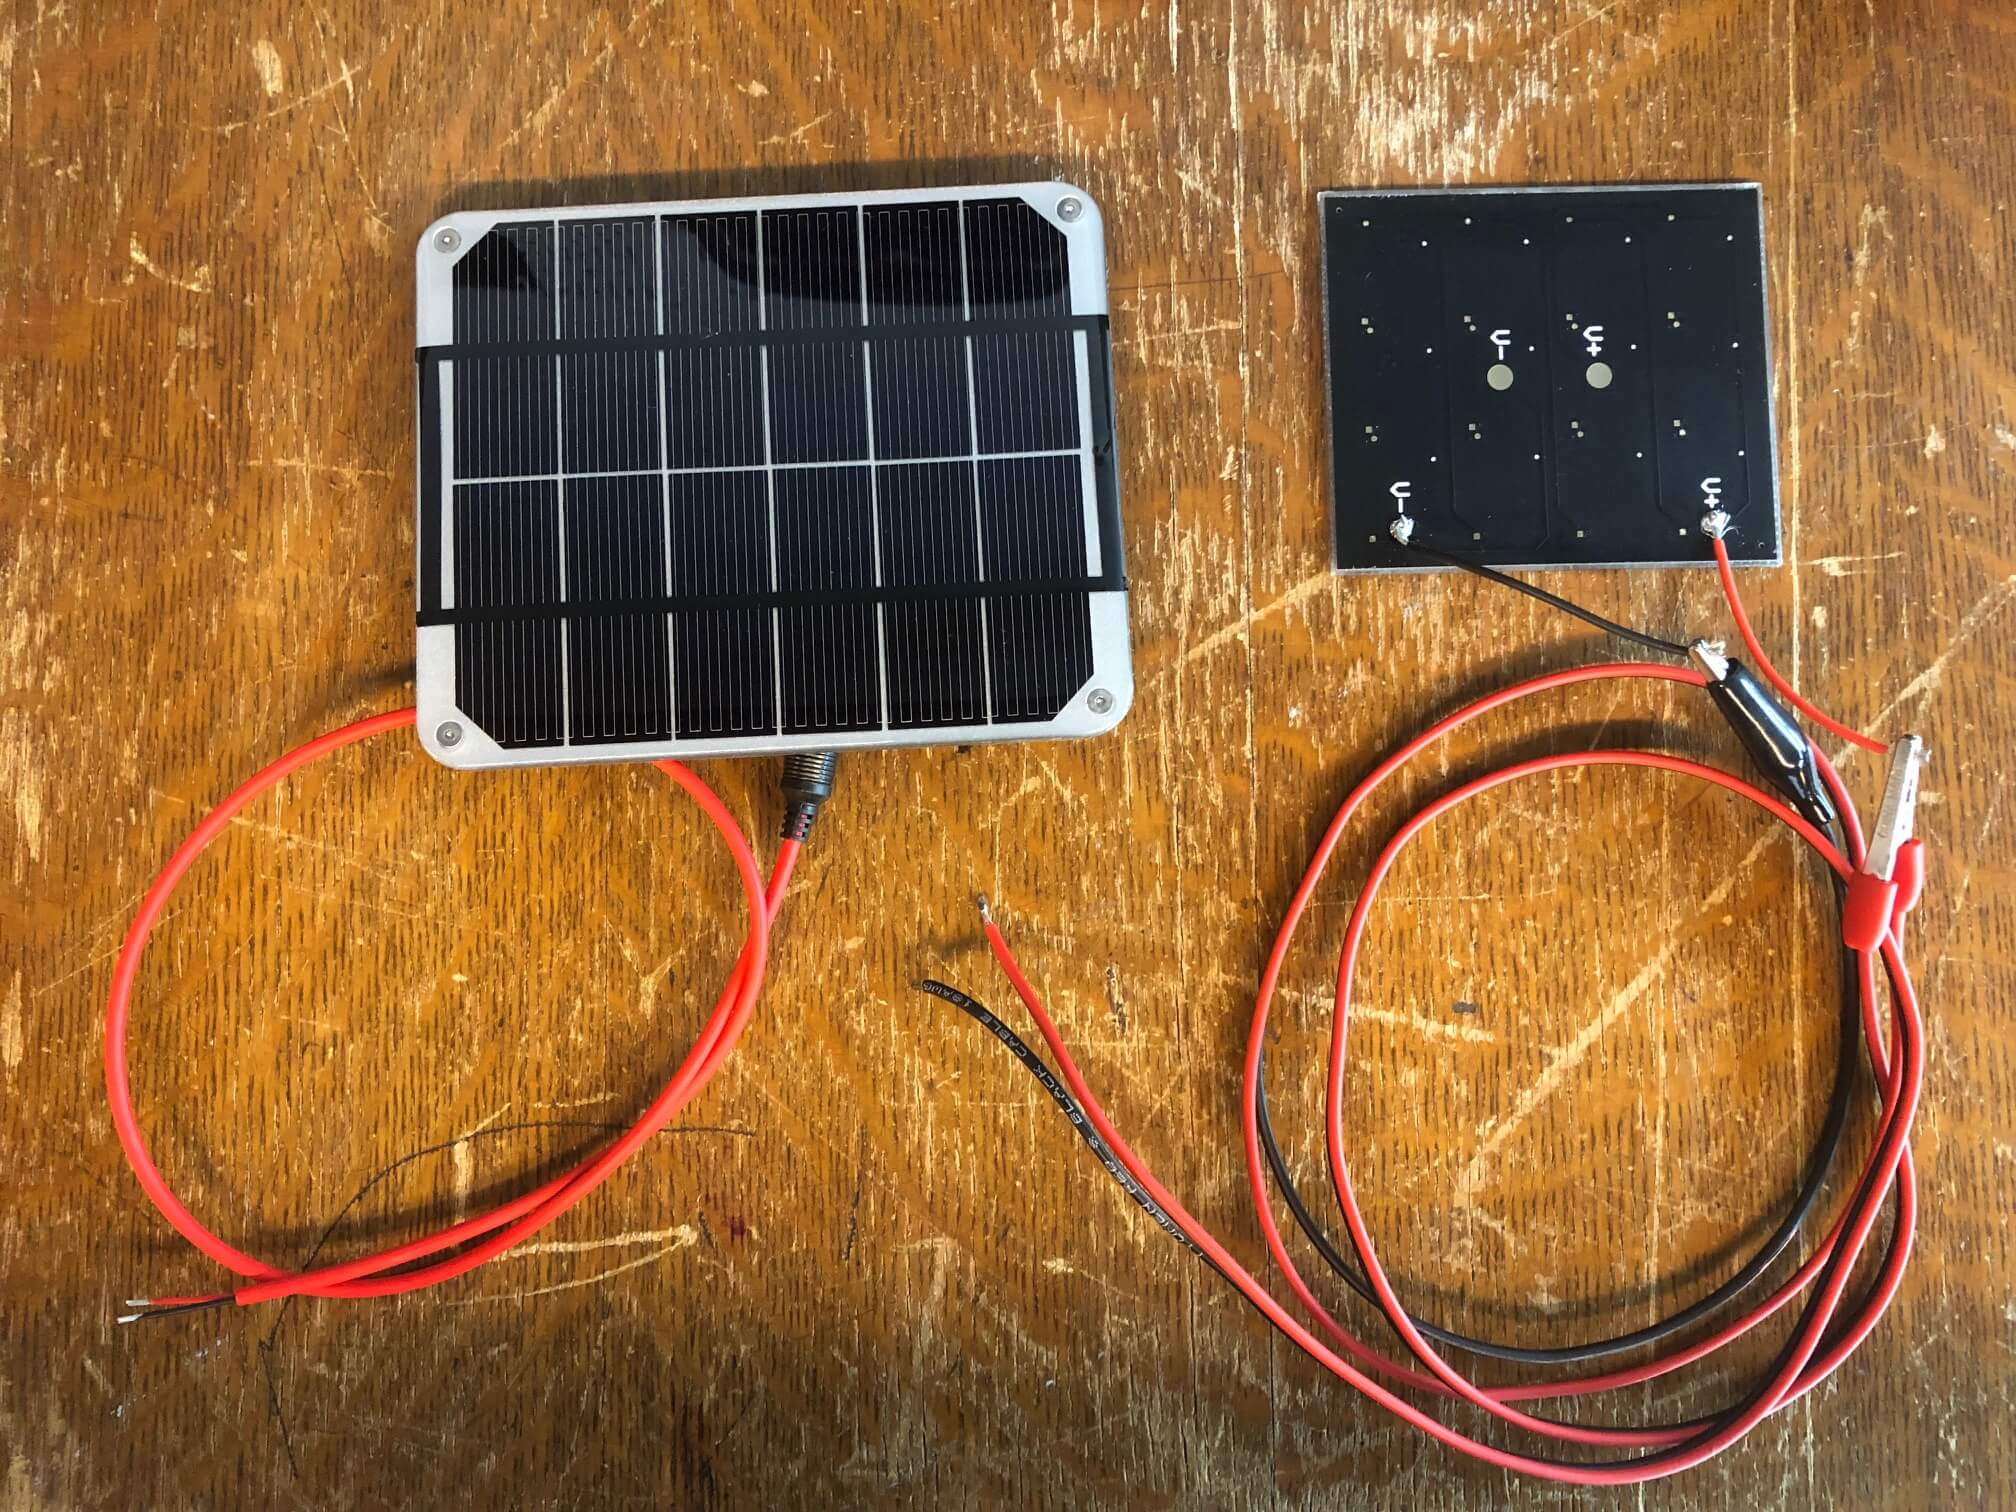 How To Solder To Solar Cells